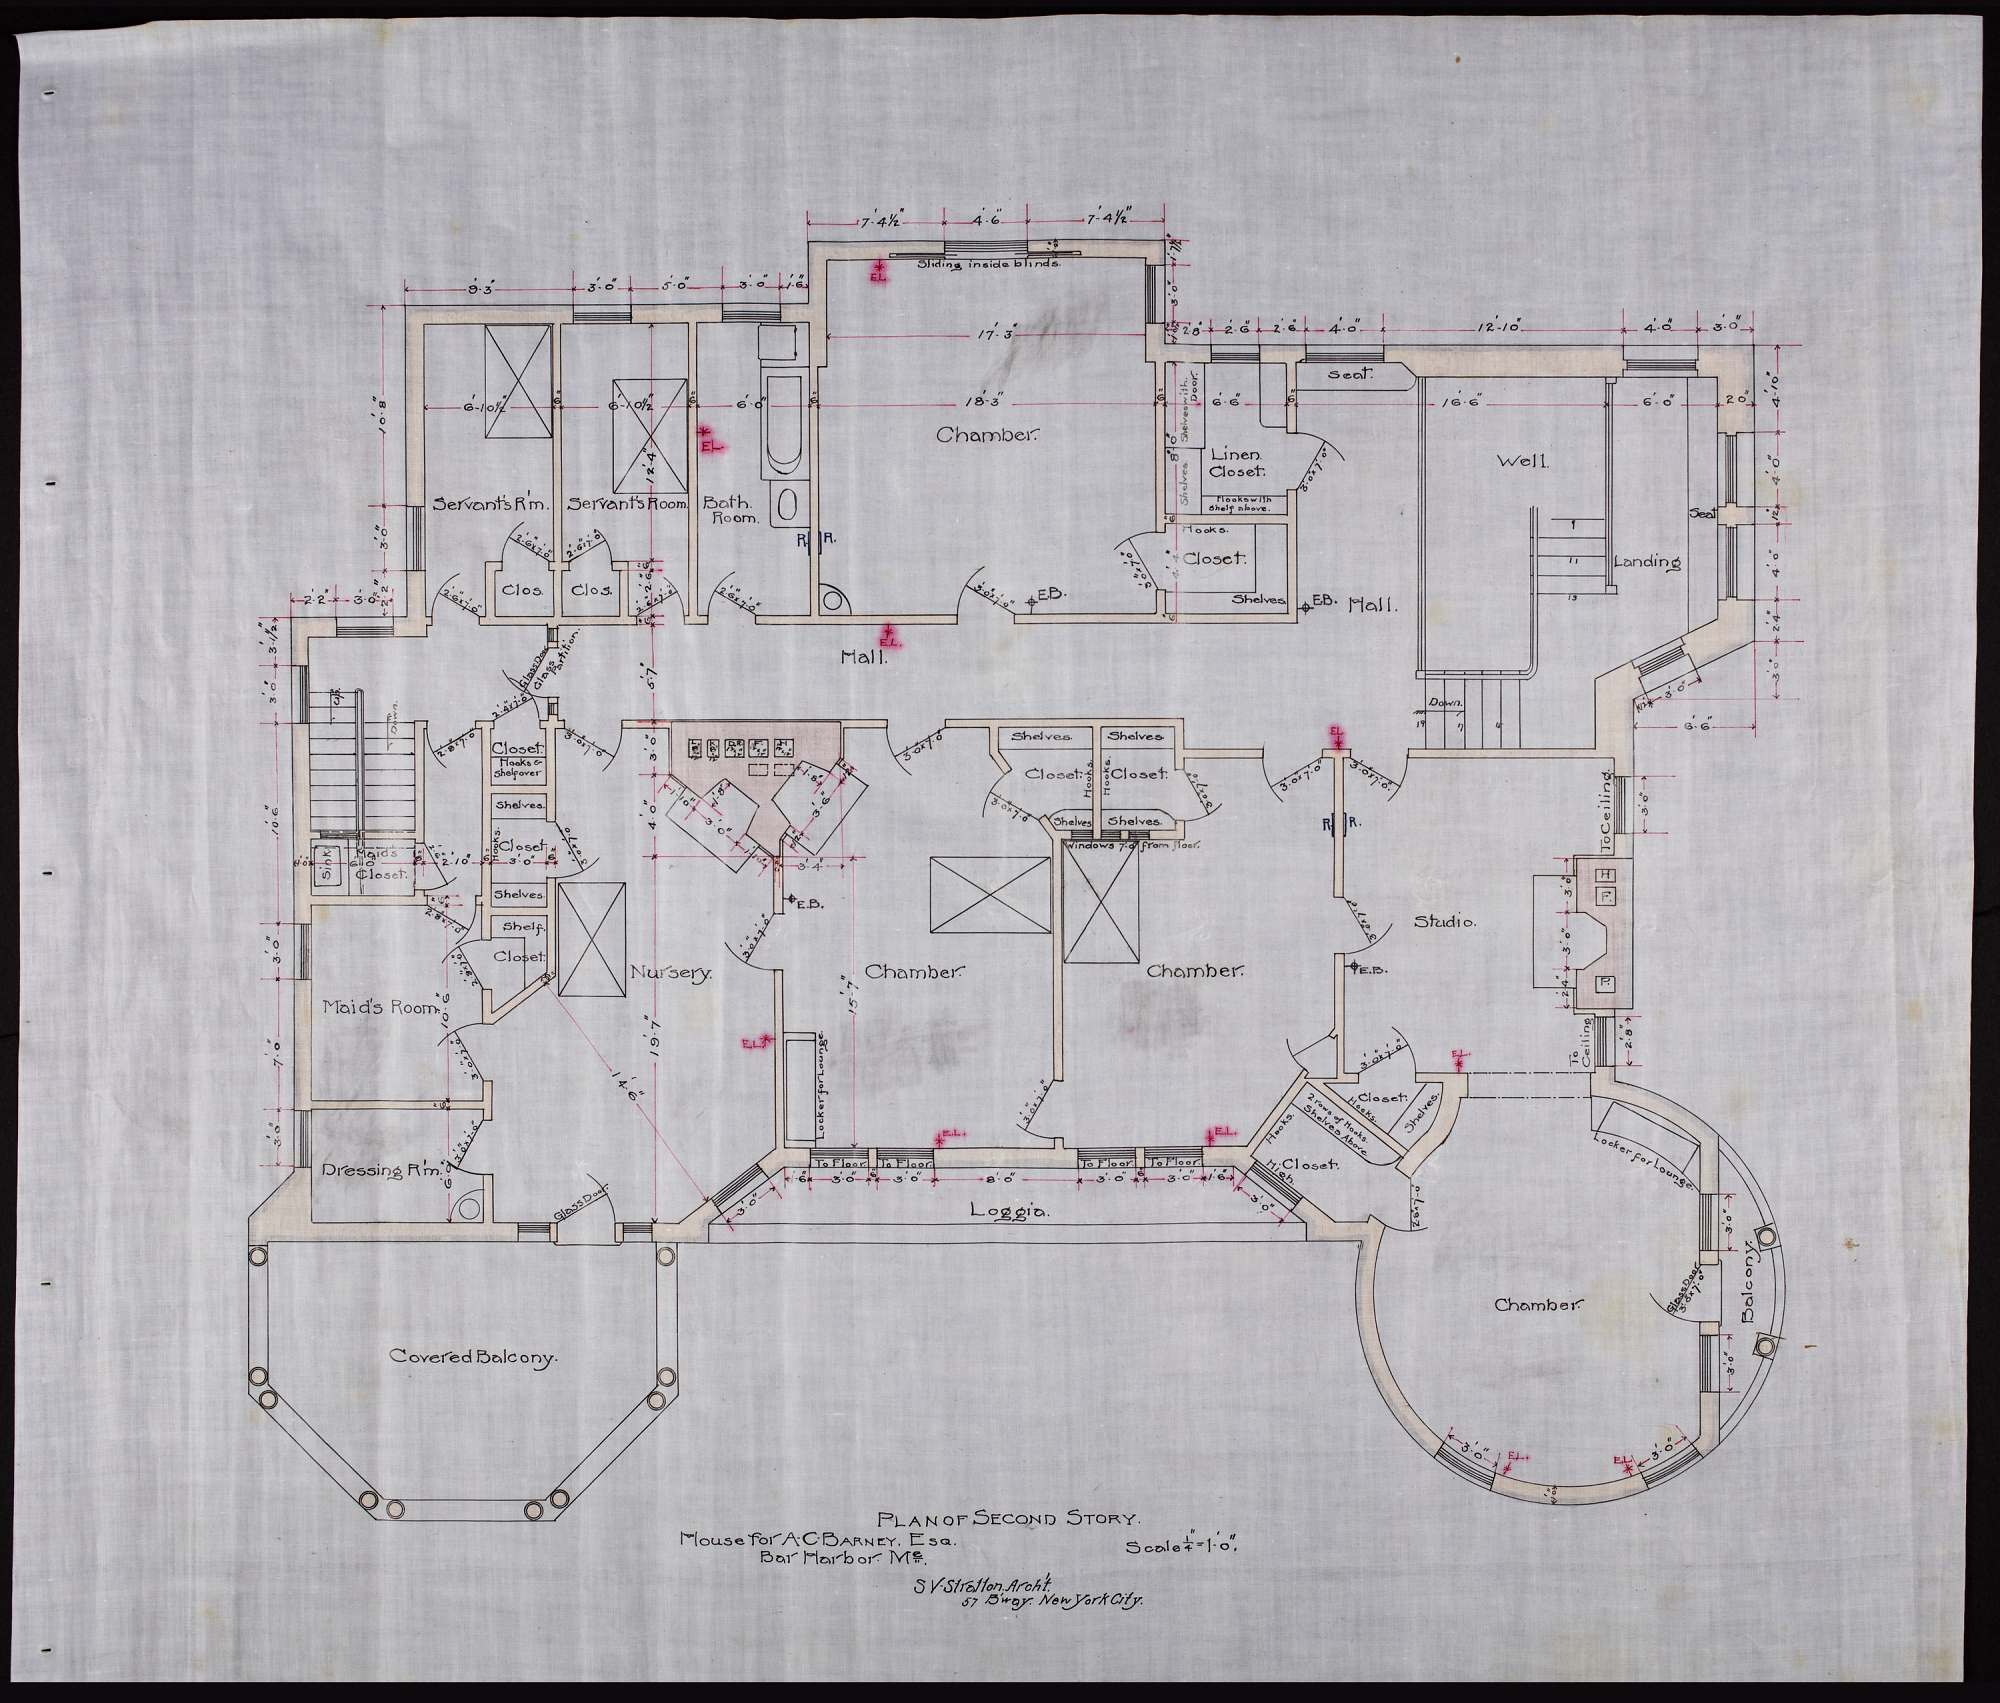 Plan showing 2 servant's rooms, maid's room, dressing room, nursery, 4 chambers, studio, bathroom, a